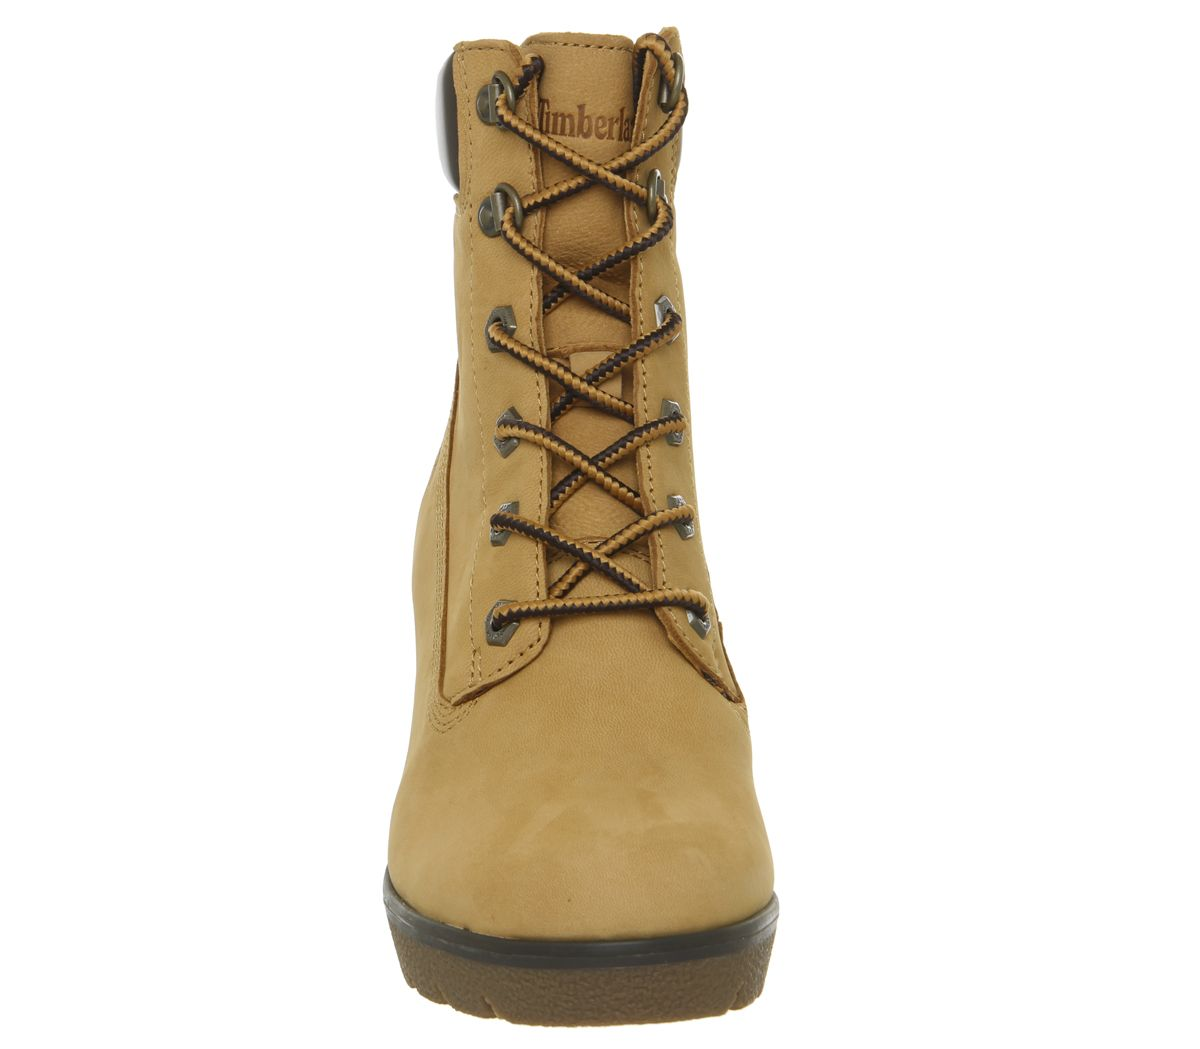 dca2196ca4df Timberland Paris Height 6 Inch Wedges Wheat - Ankle Boots